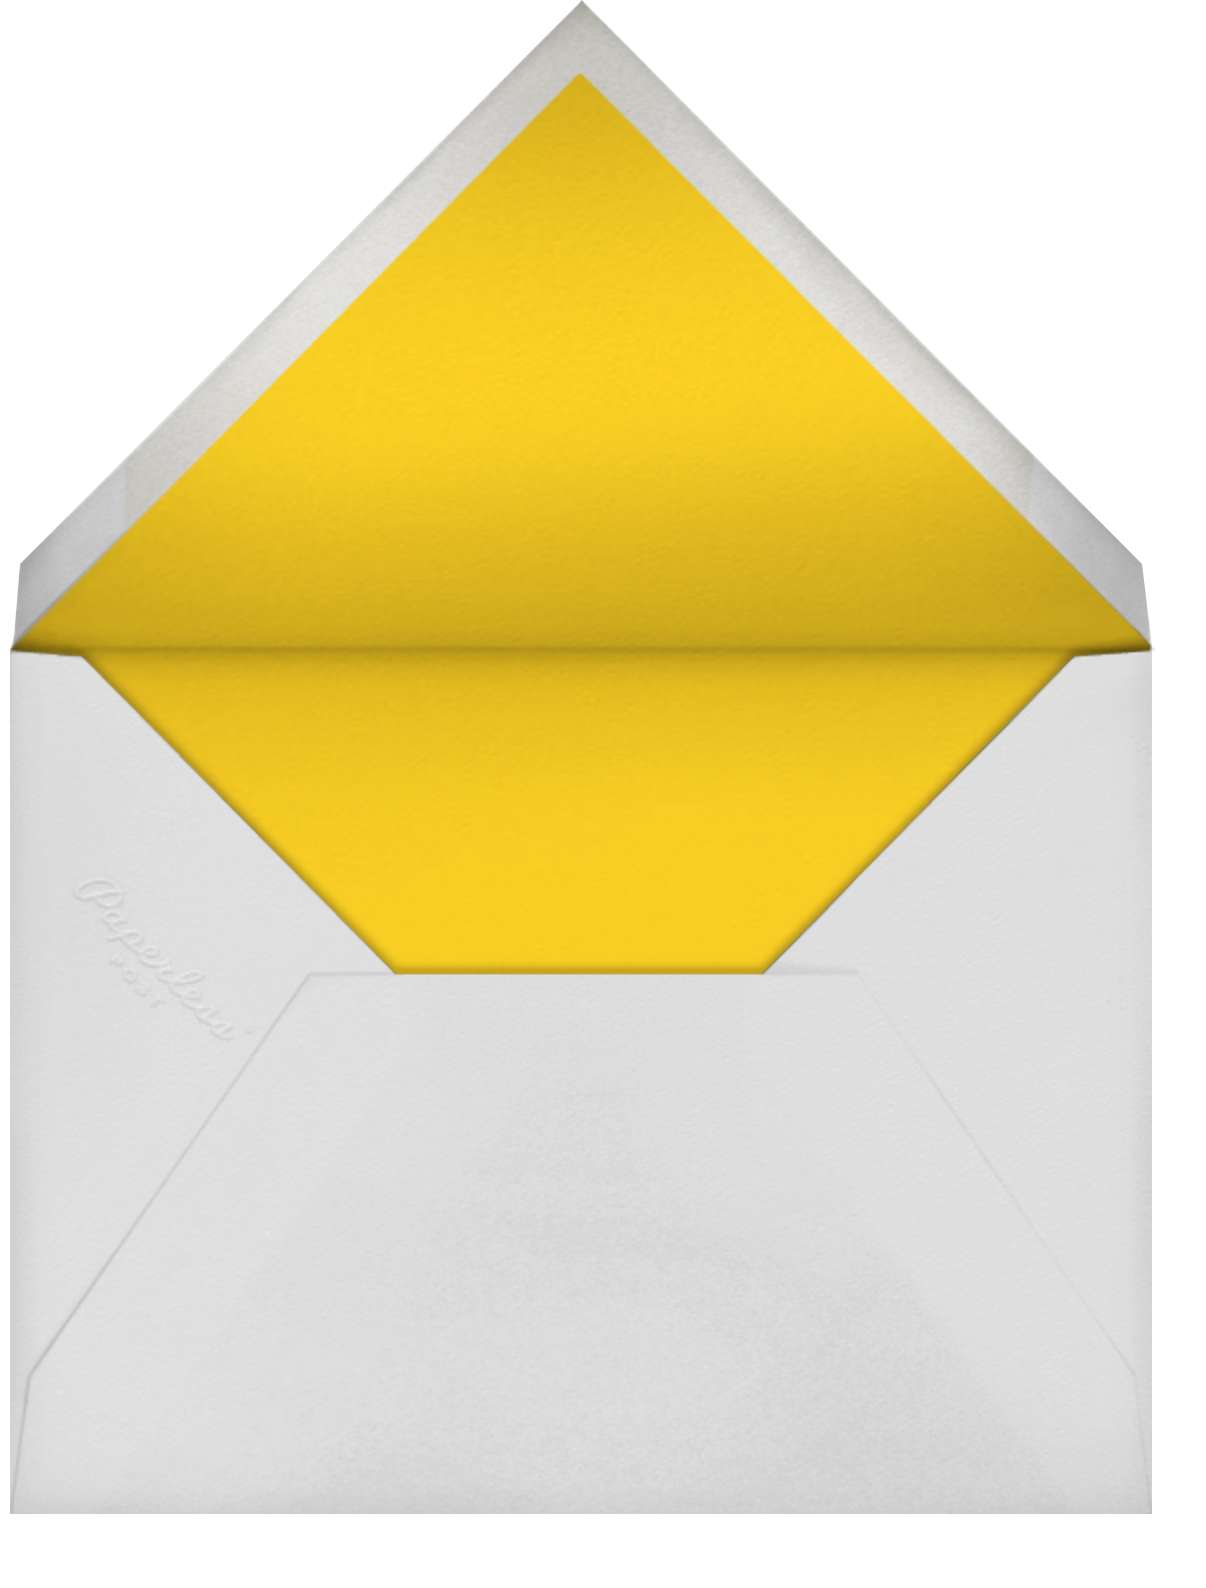 Flags Up Photo - Paperless Post - Envelope